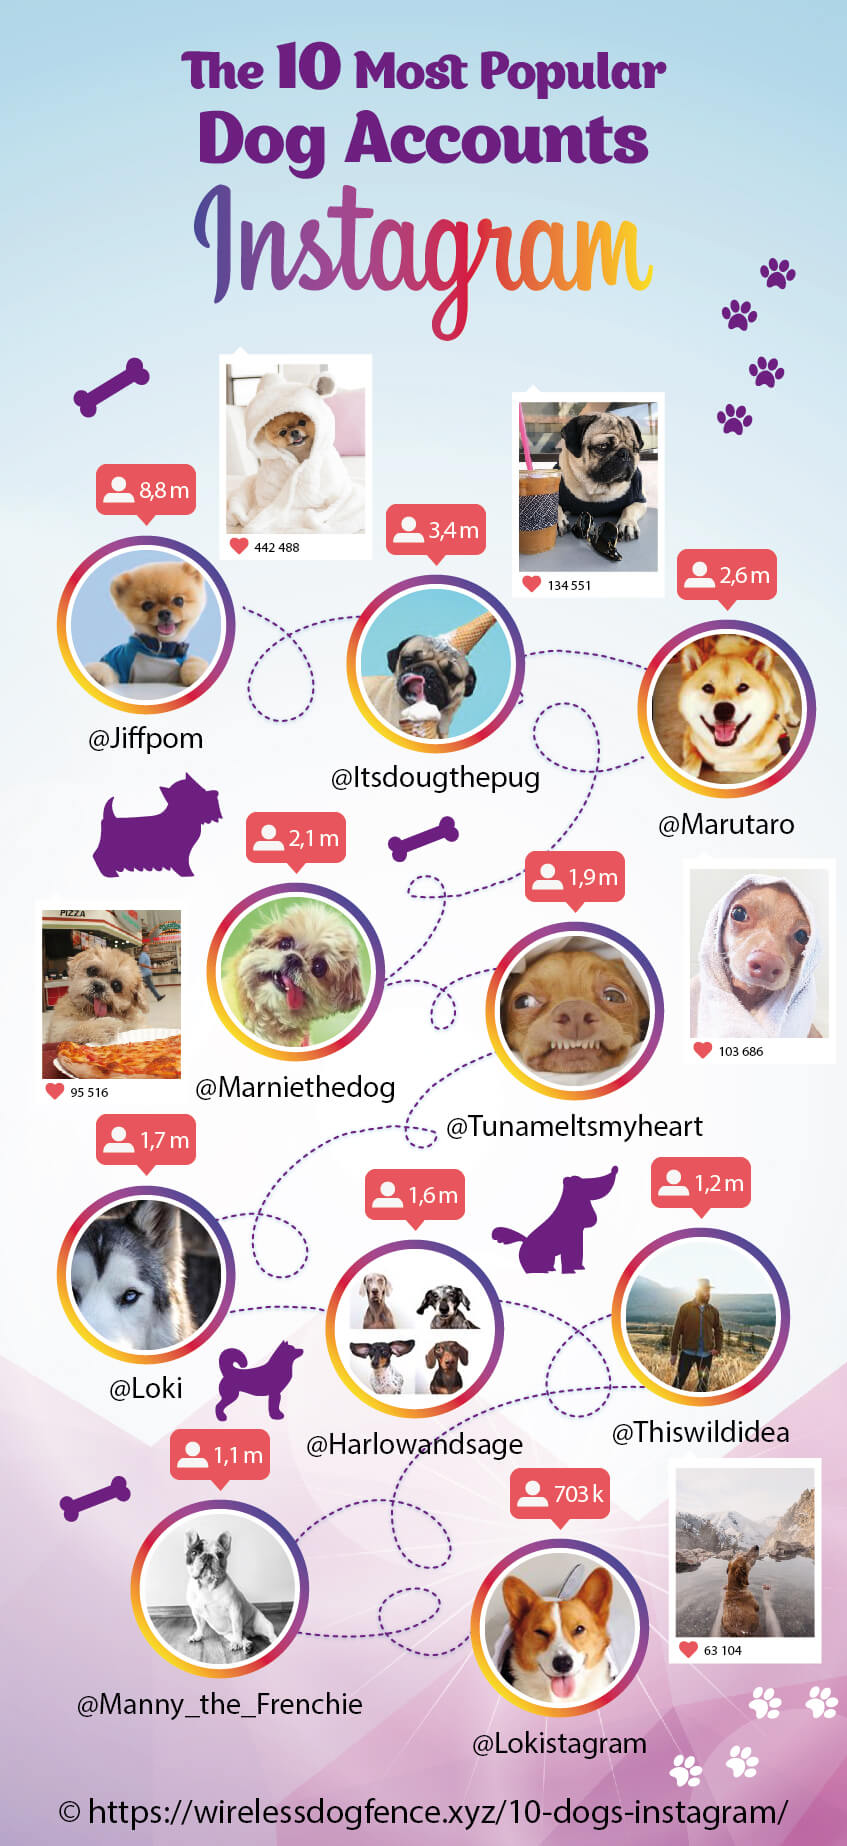 The-10-Most-Popular-Dog-Accounts-on-Instagram-Infographic-plaza